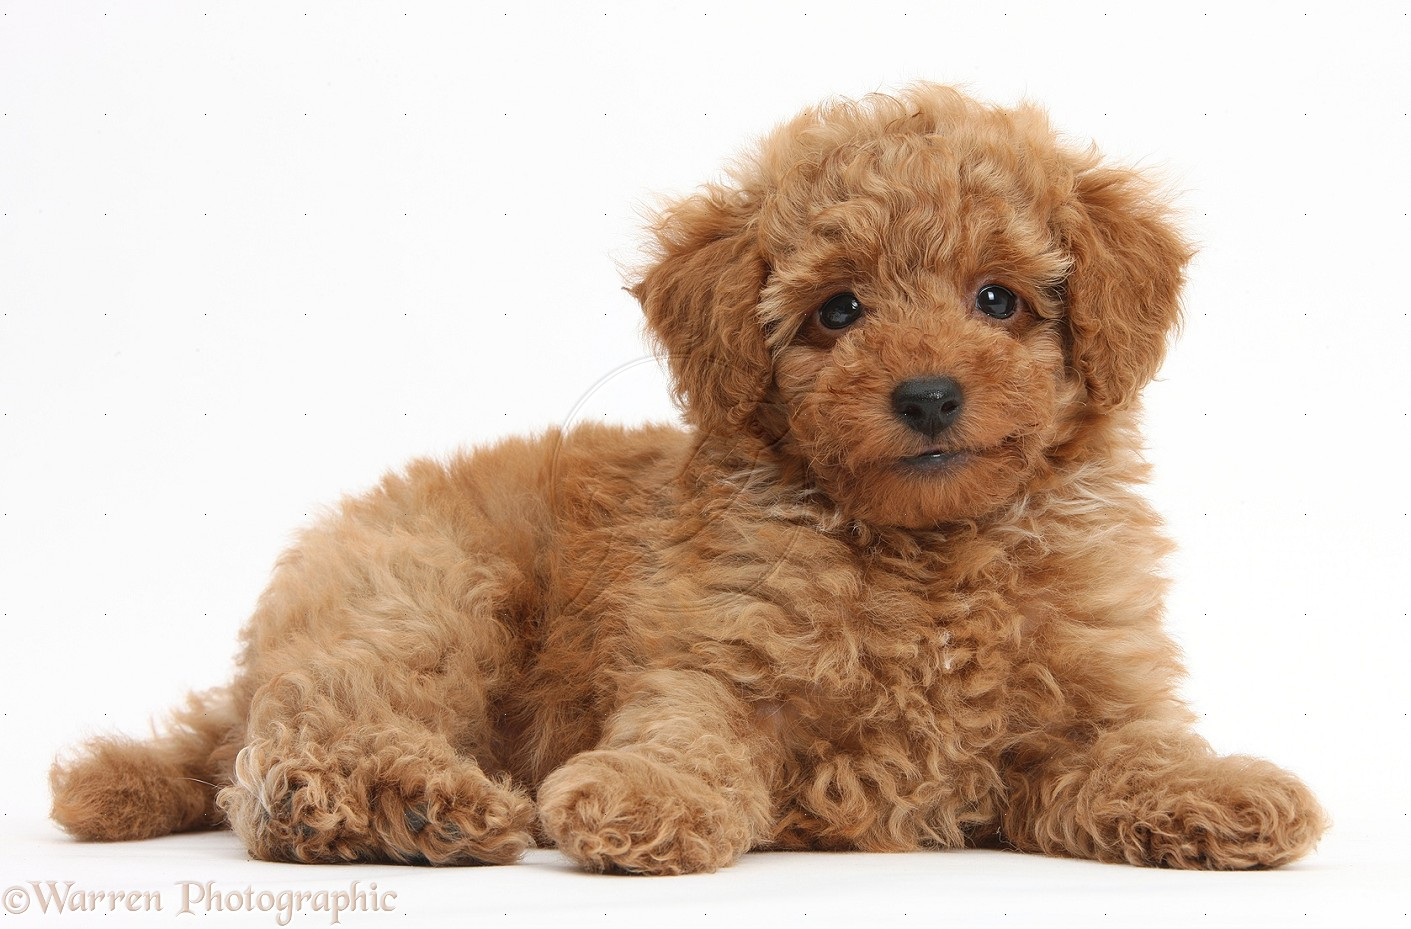 Poodle History, Personality, Appearance, Health and Pictures